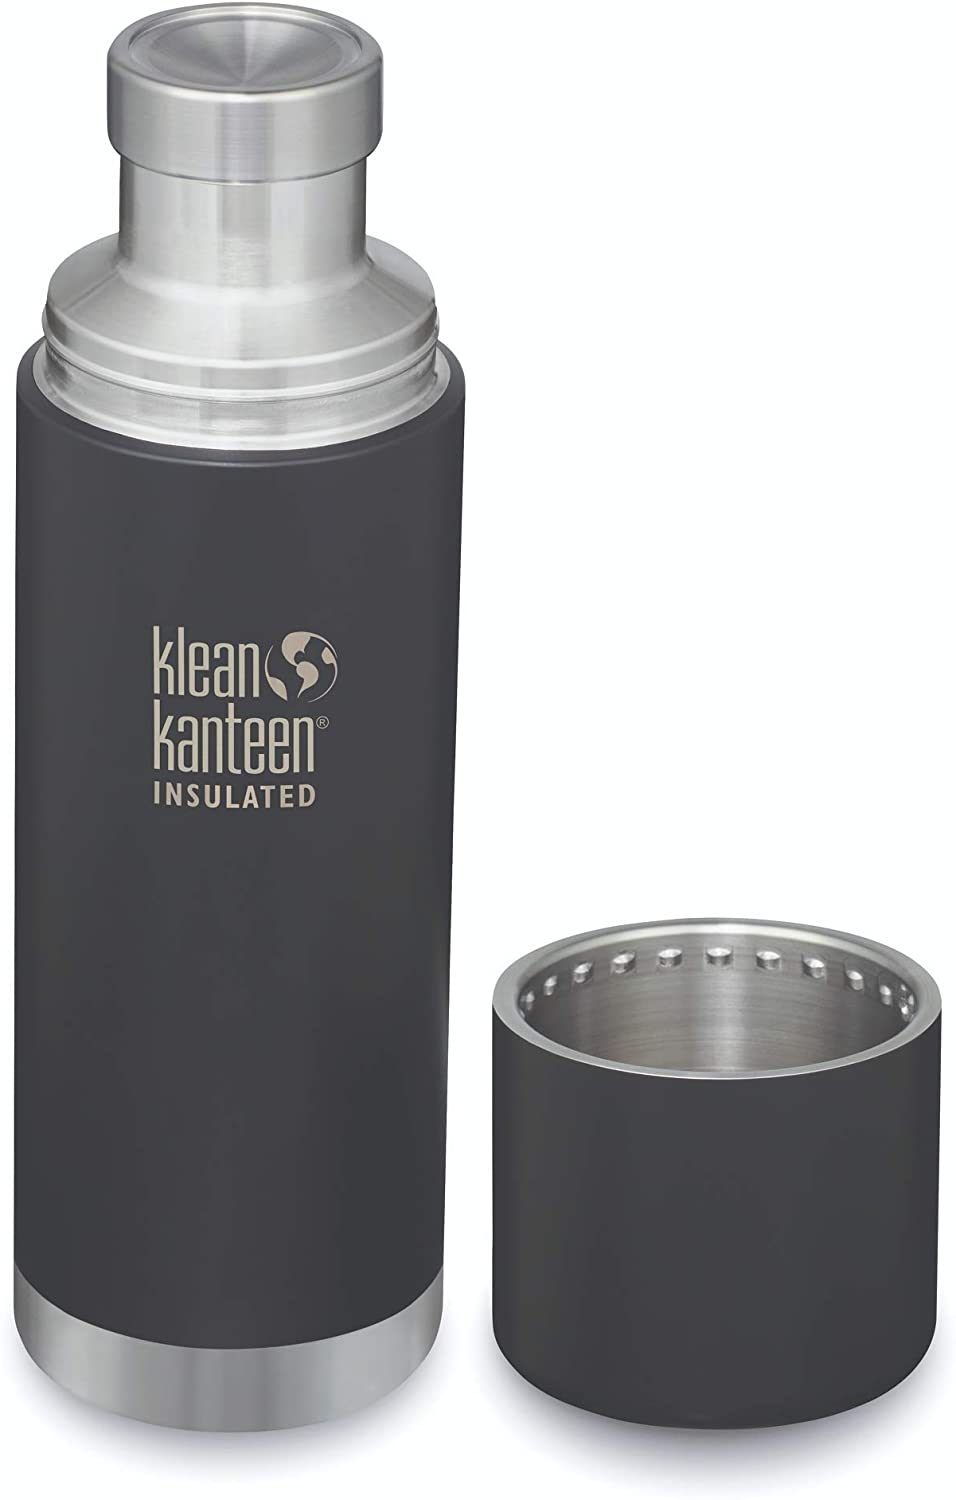 Klean Kanteen vacuum insulated water bottle, what water bottle keeps water the coldest